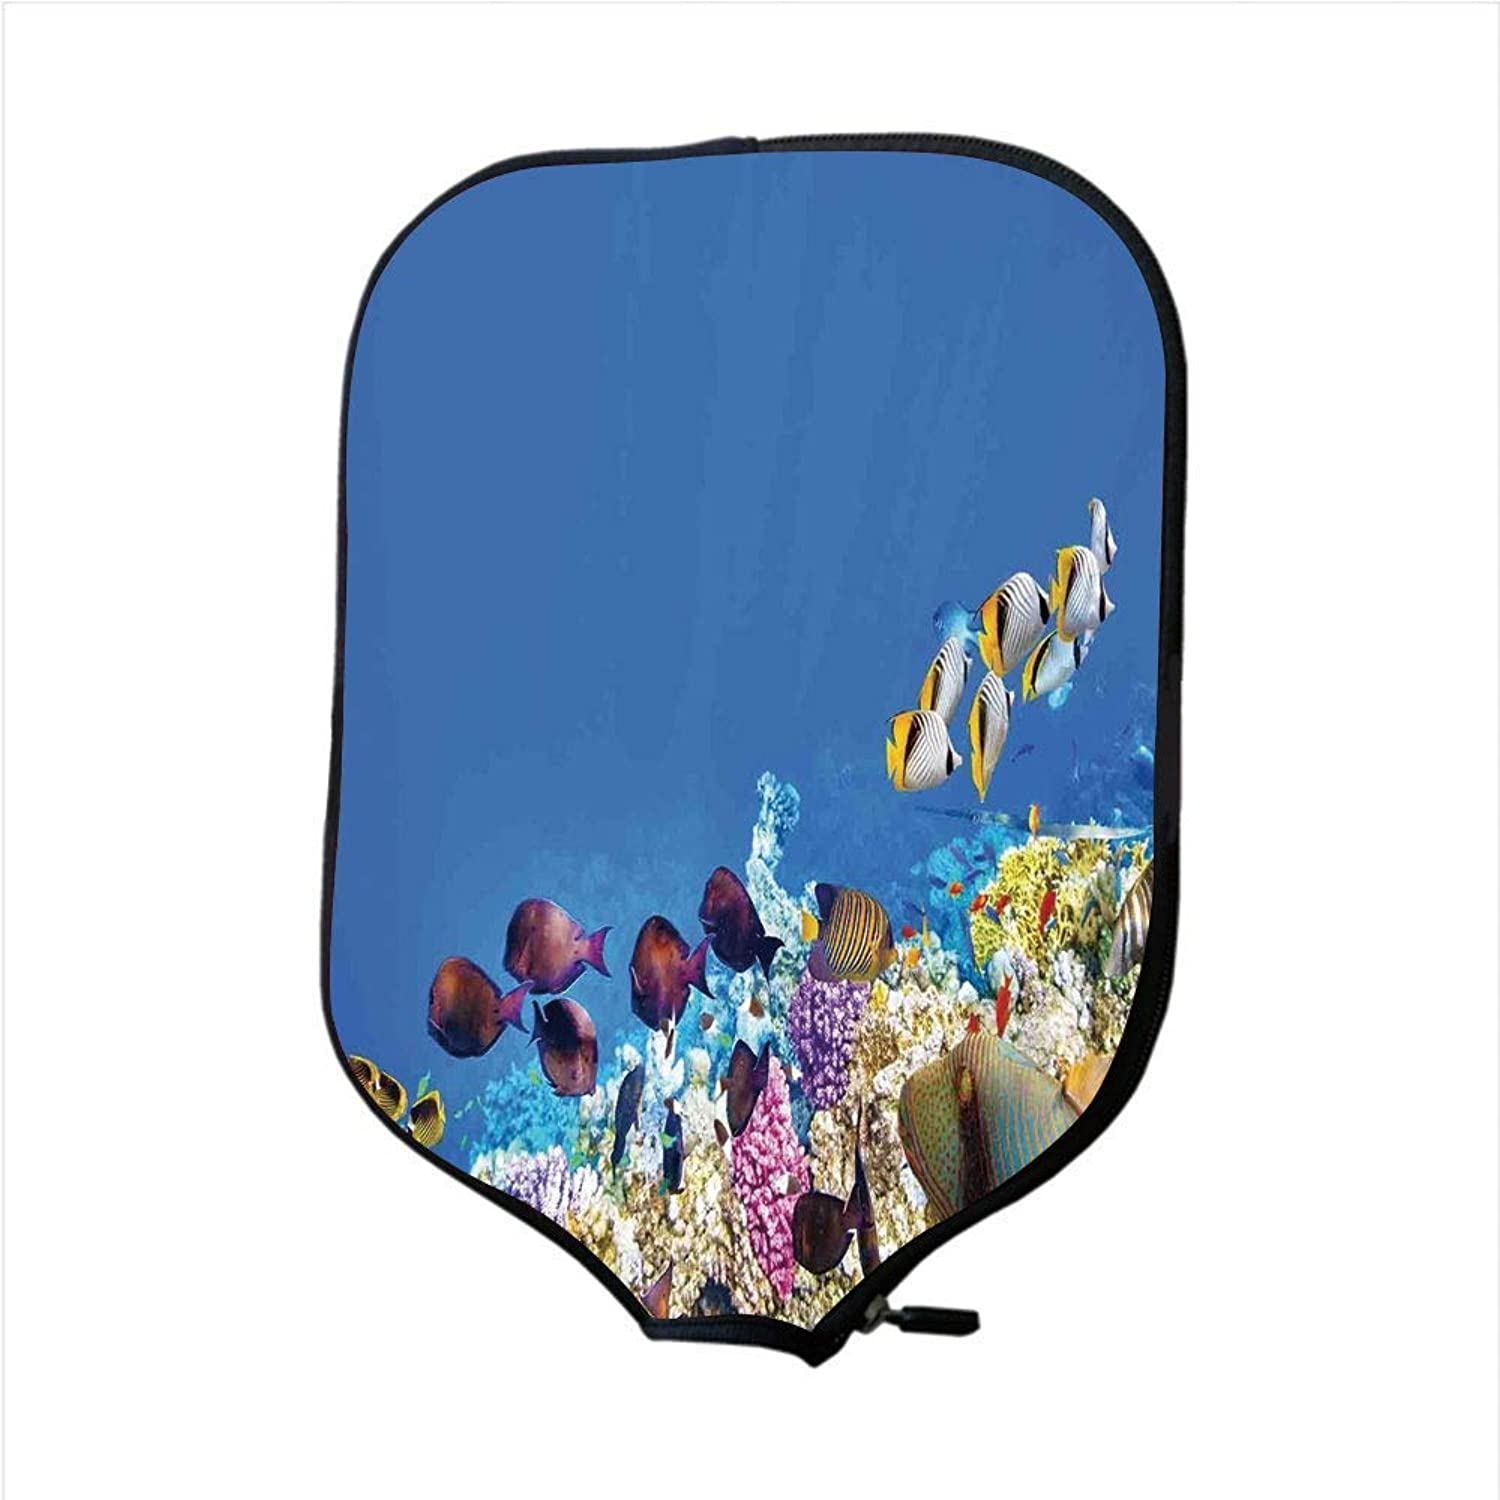 Fine Neoprene Pickleball Paddle Racket Cover Case,Ocean,Fish Schools Swimming Submerged Ancient Coral Reefs Nature Marine World,blueee Yellow and Purple,Fit for Most Rackets